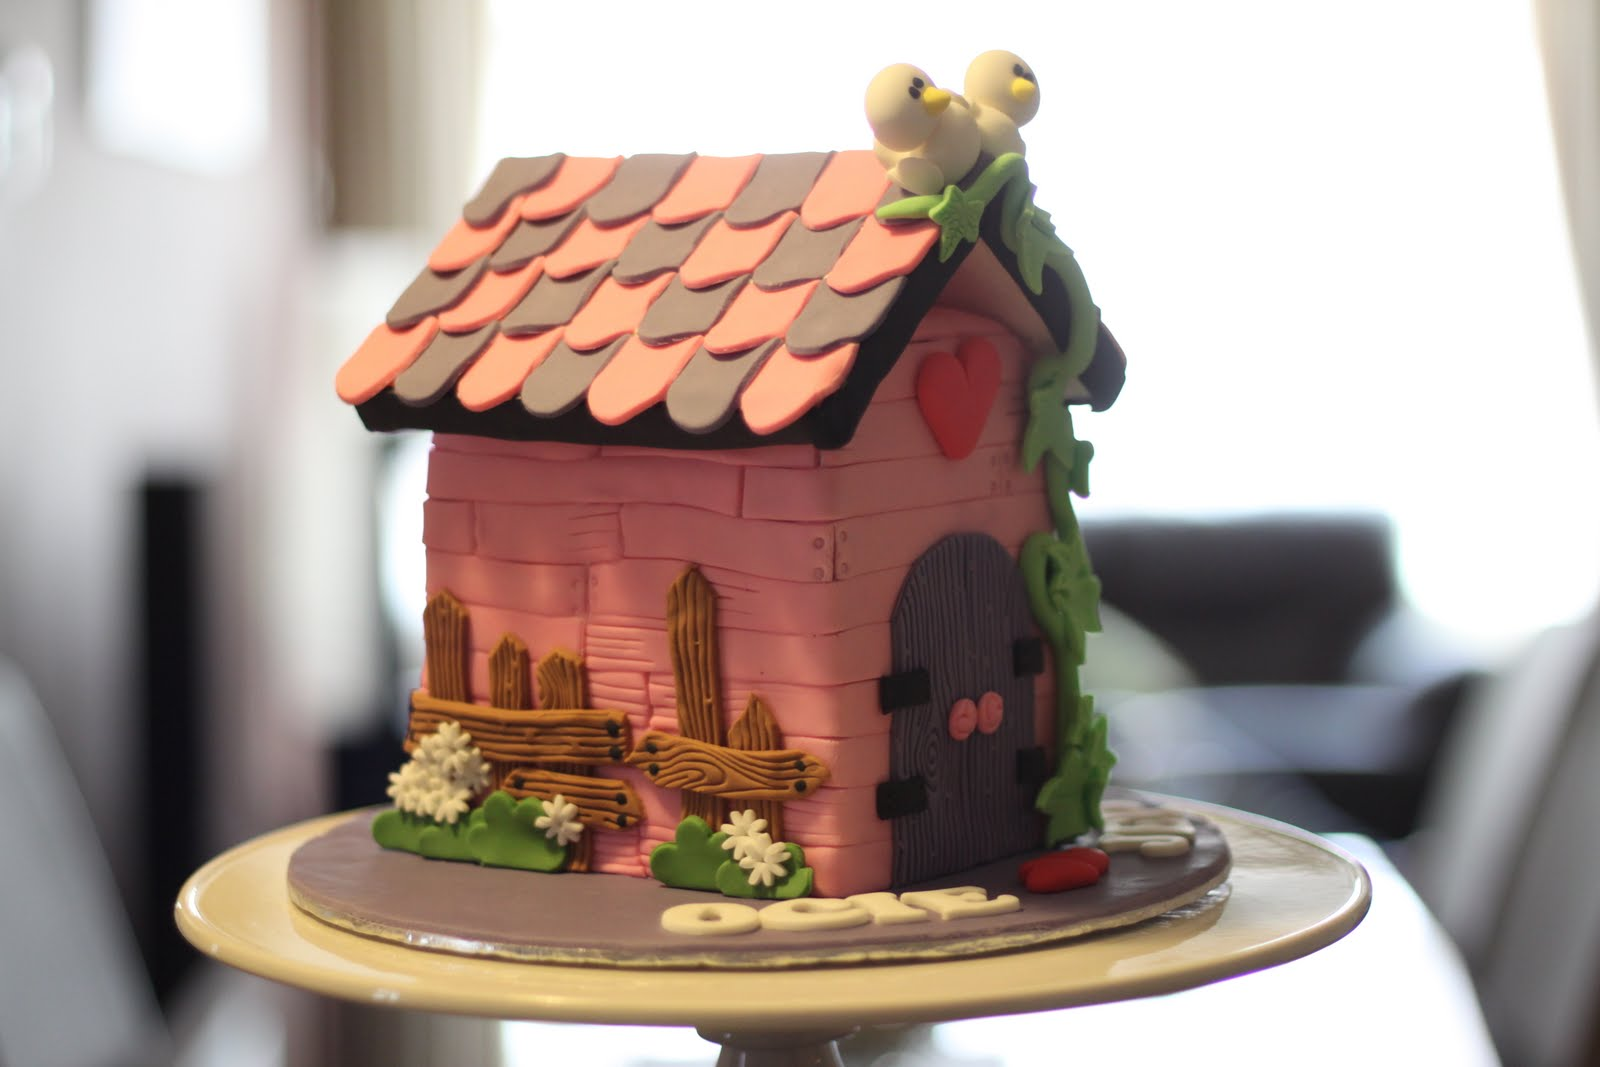 how to build a cake house